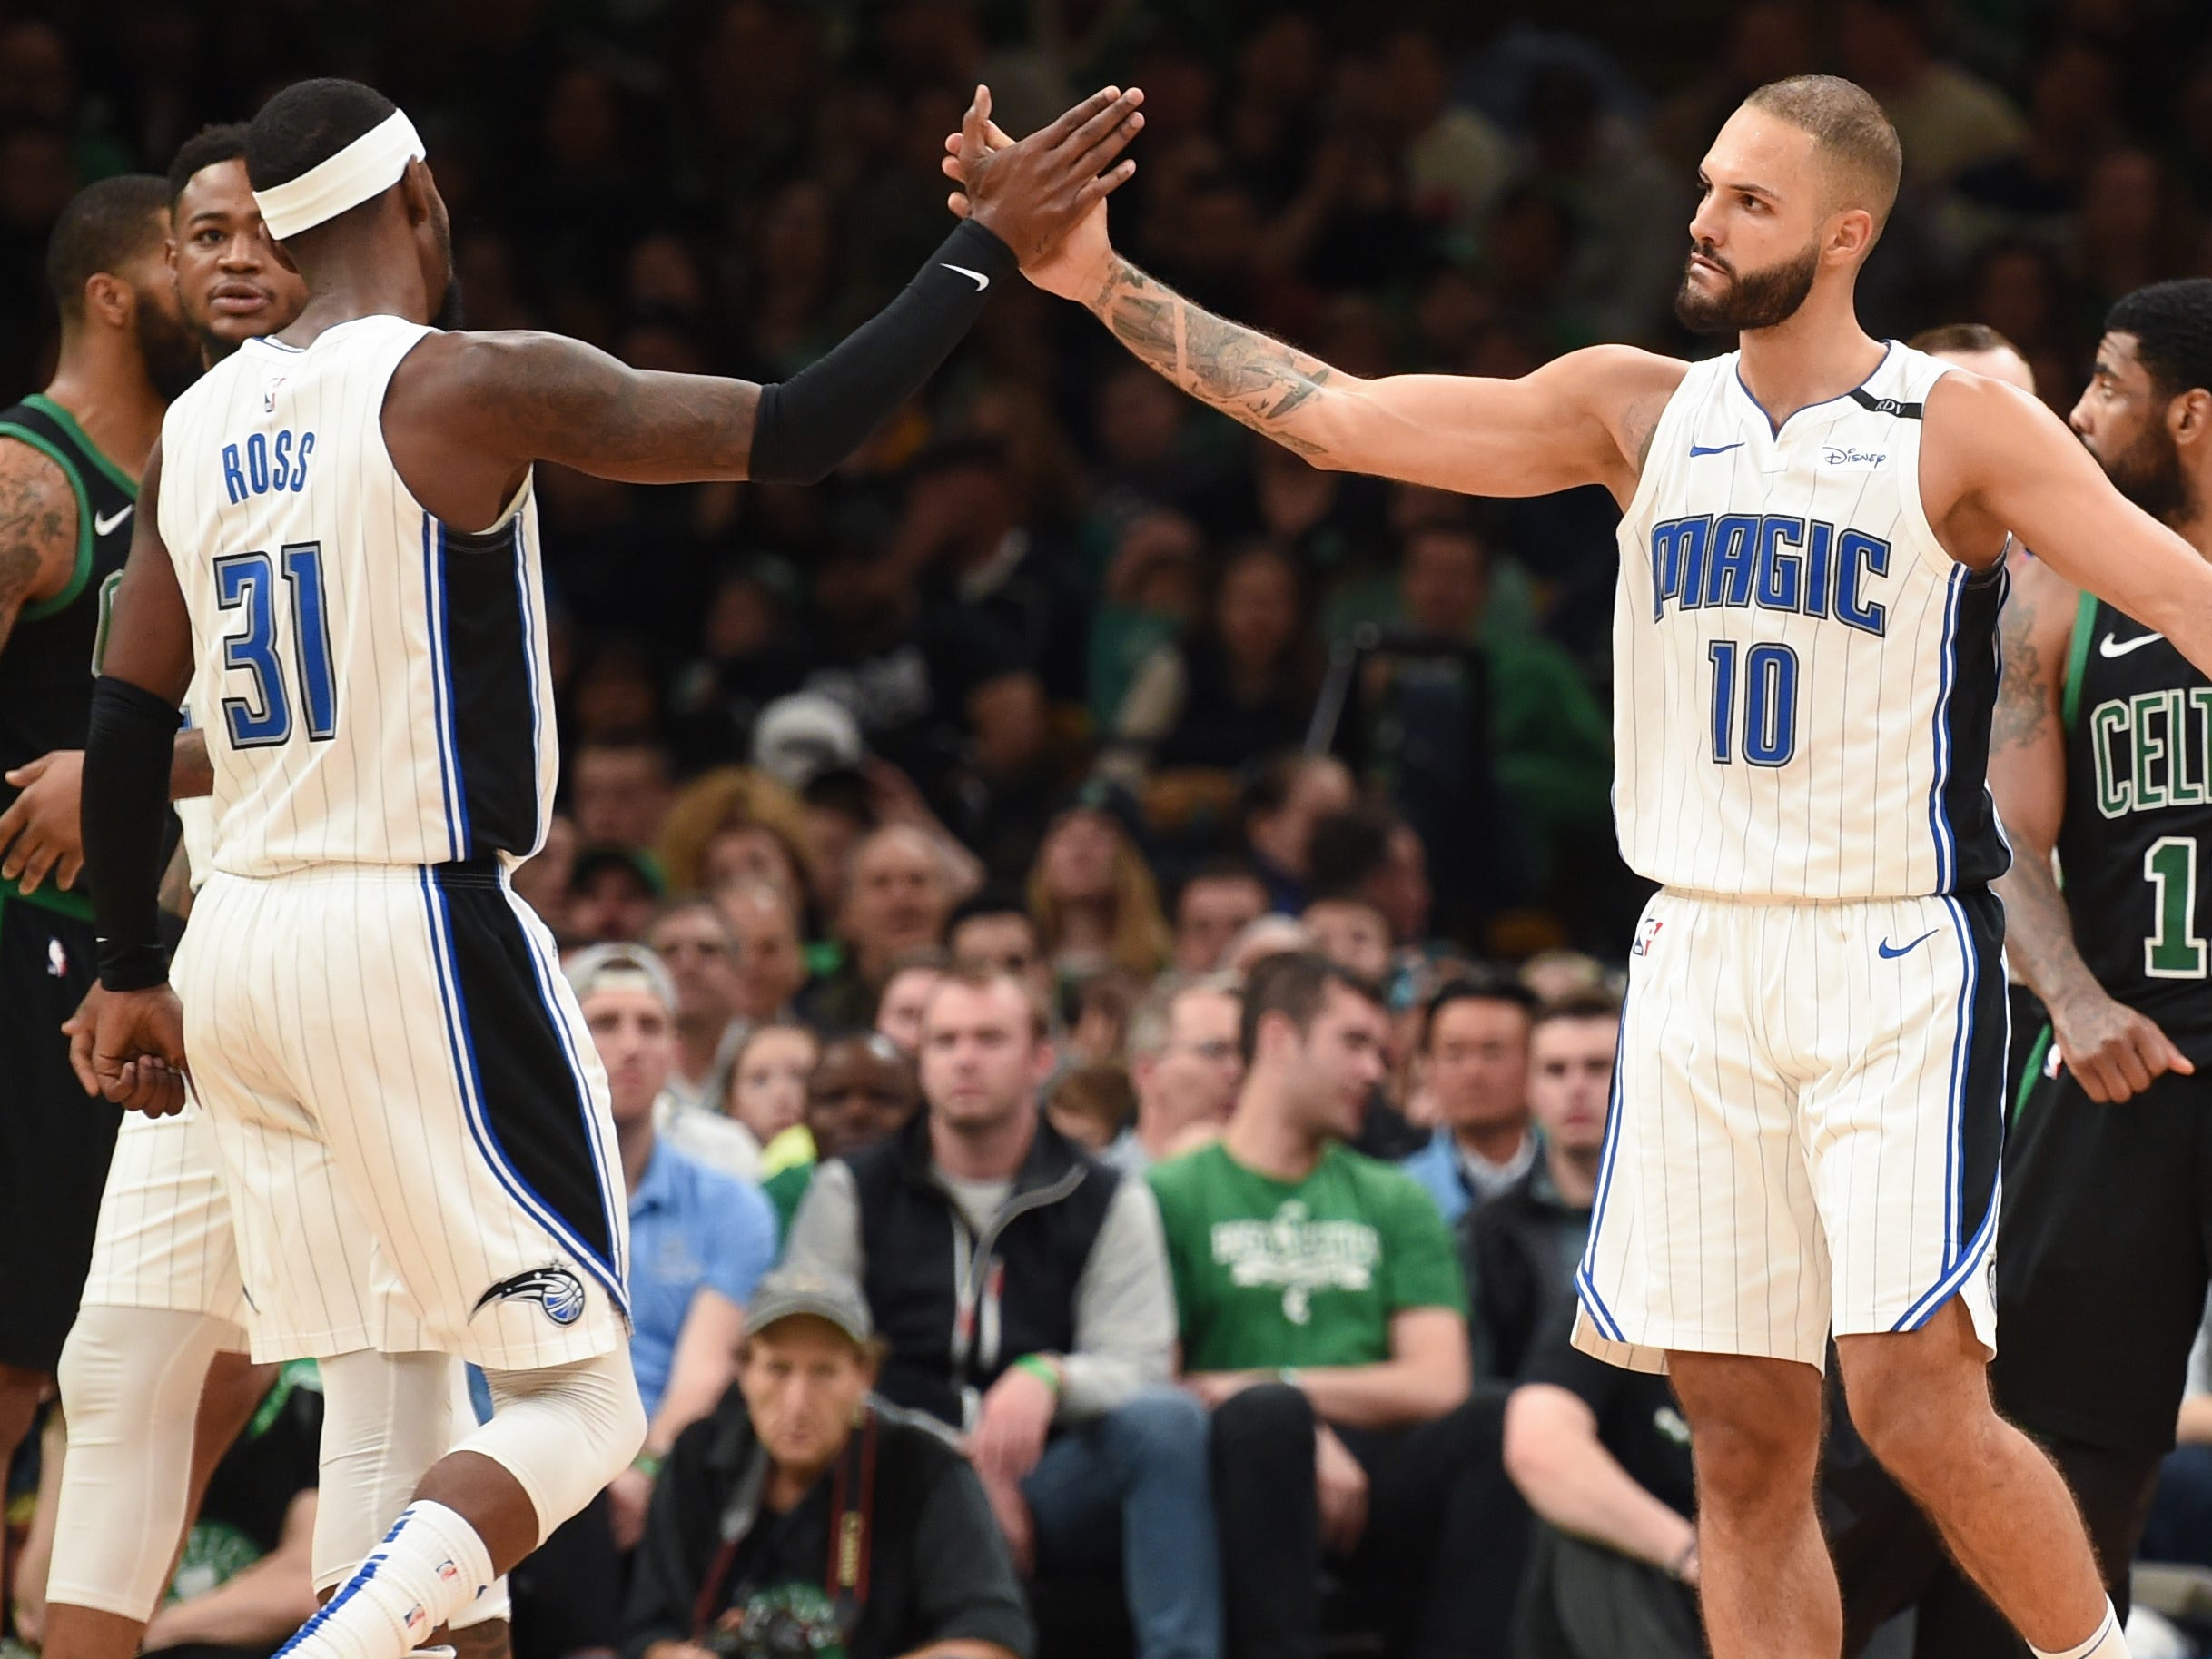 April 7: Terrence Ross (31) and Evan Fournier (10) celebrate a big second-half bucket in the Magic's playoff-clinching win over the Celtics in Boston.